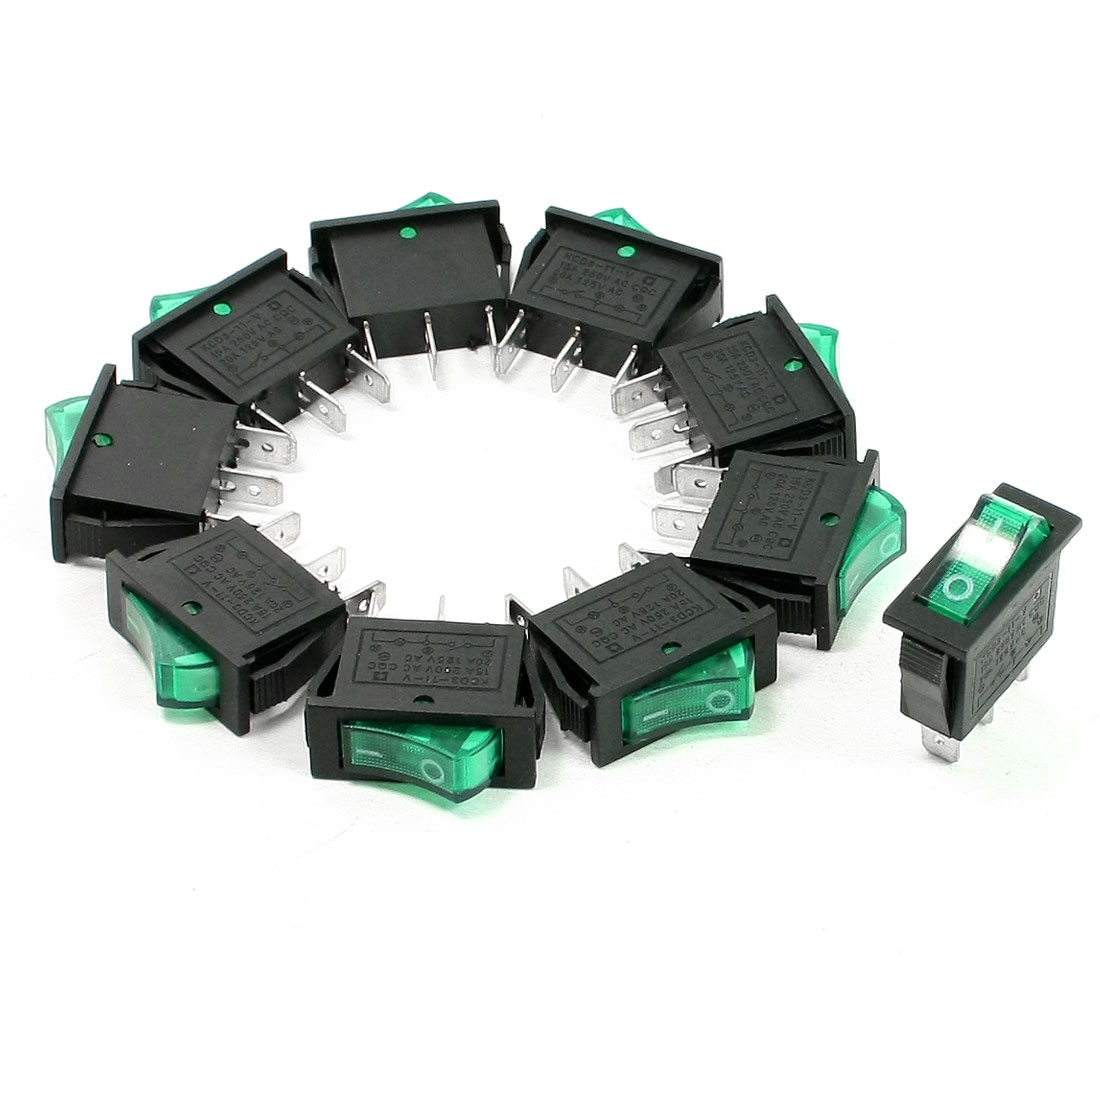 10 Pcs AC 15A 250V 125V 20A SPST On/Off Green Neon Light Rocker Switch